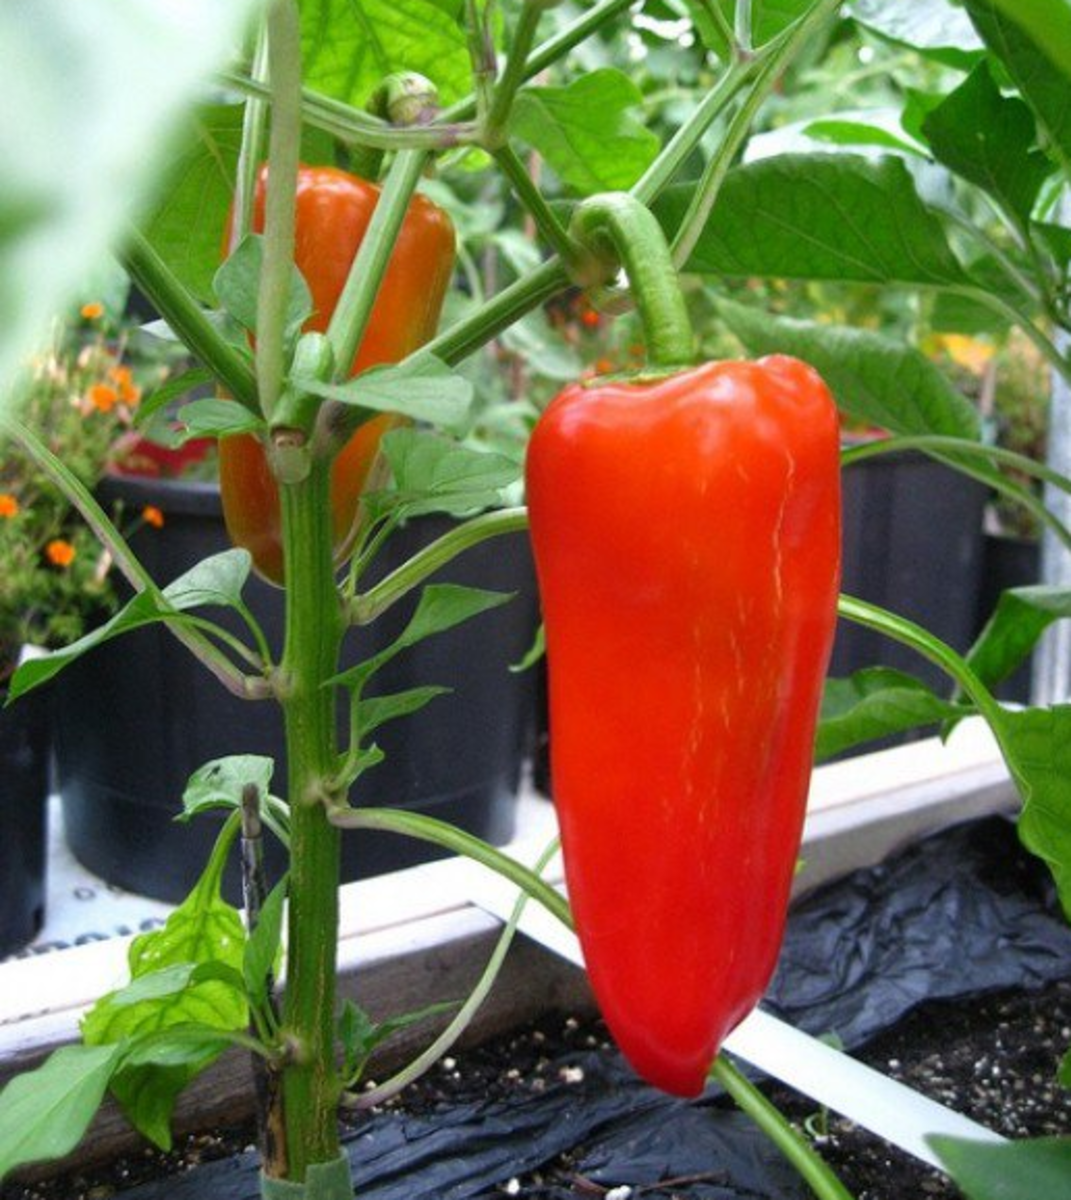 Peppers growing nicely.